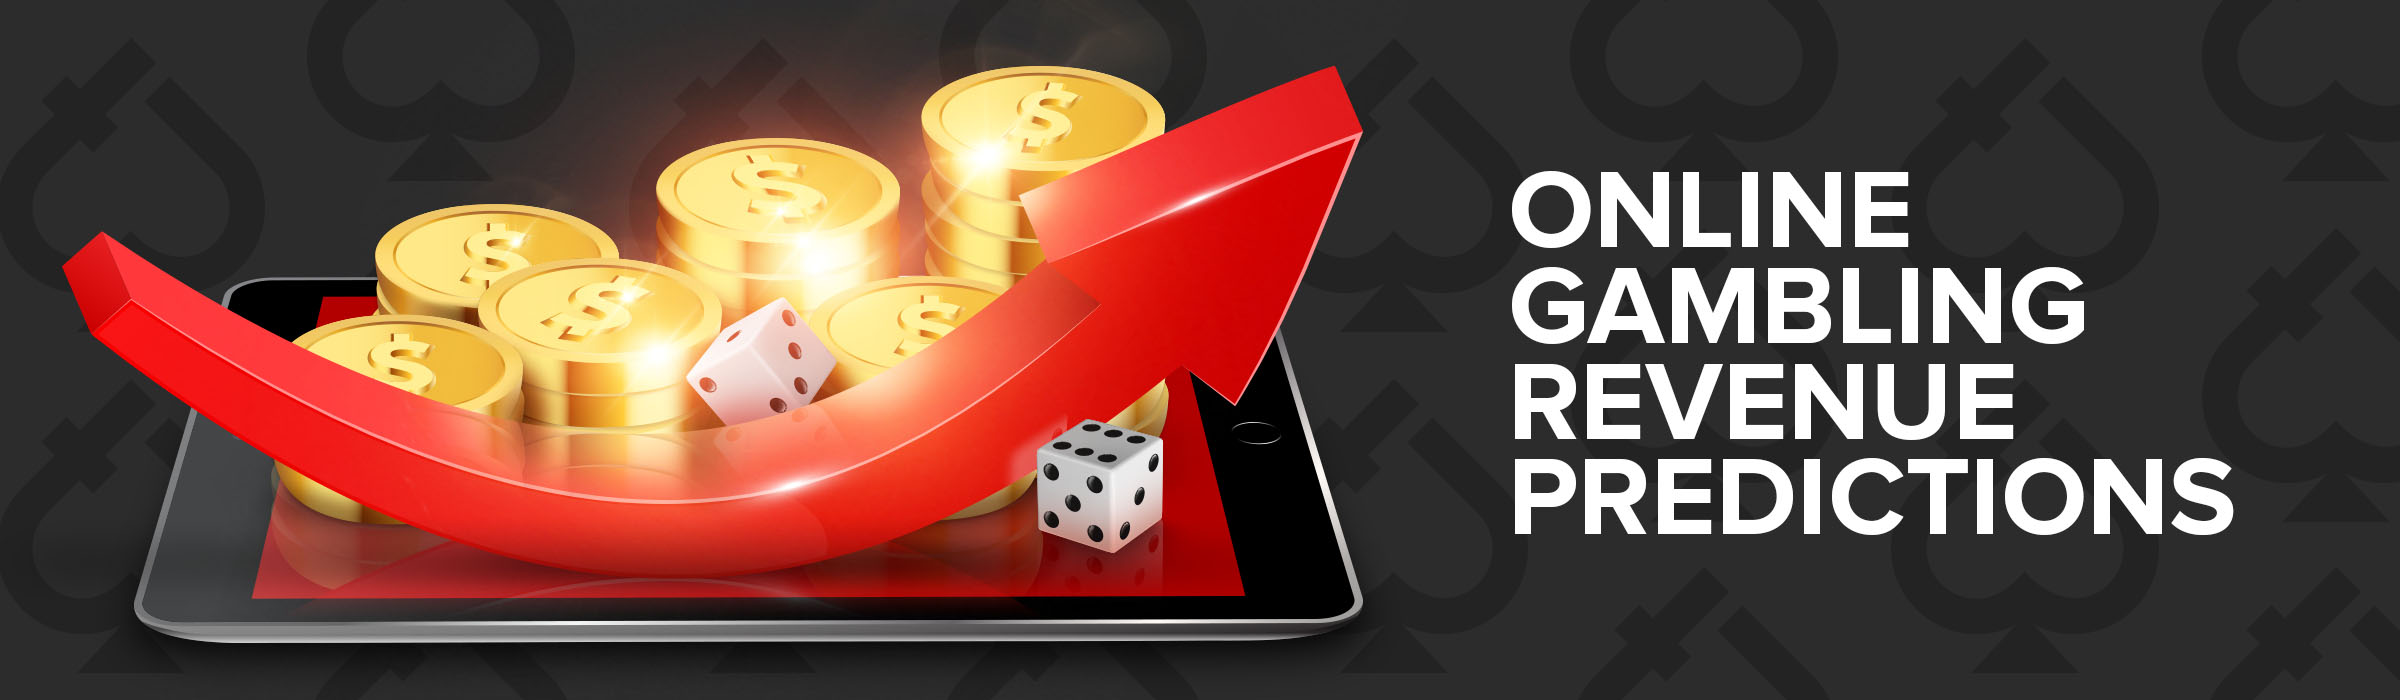 Online Gambling Market Size Predicted to Reach $158.2 Billion by 2028